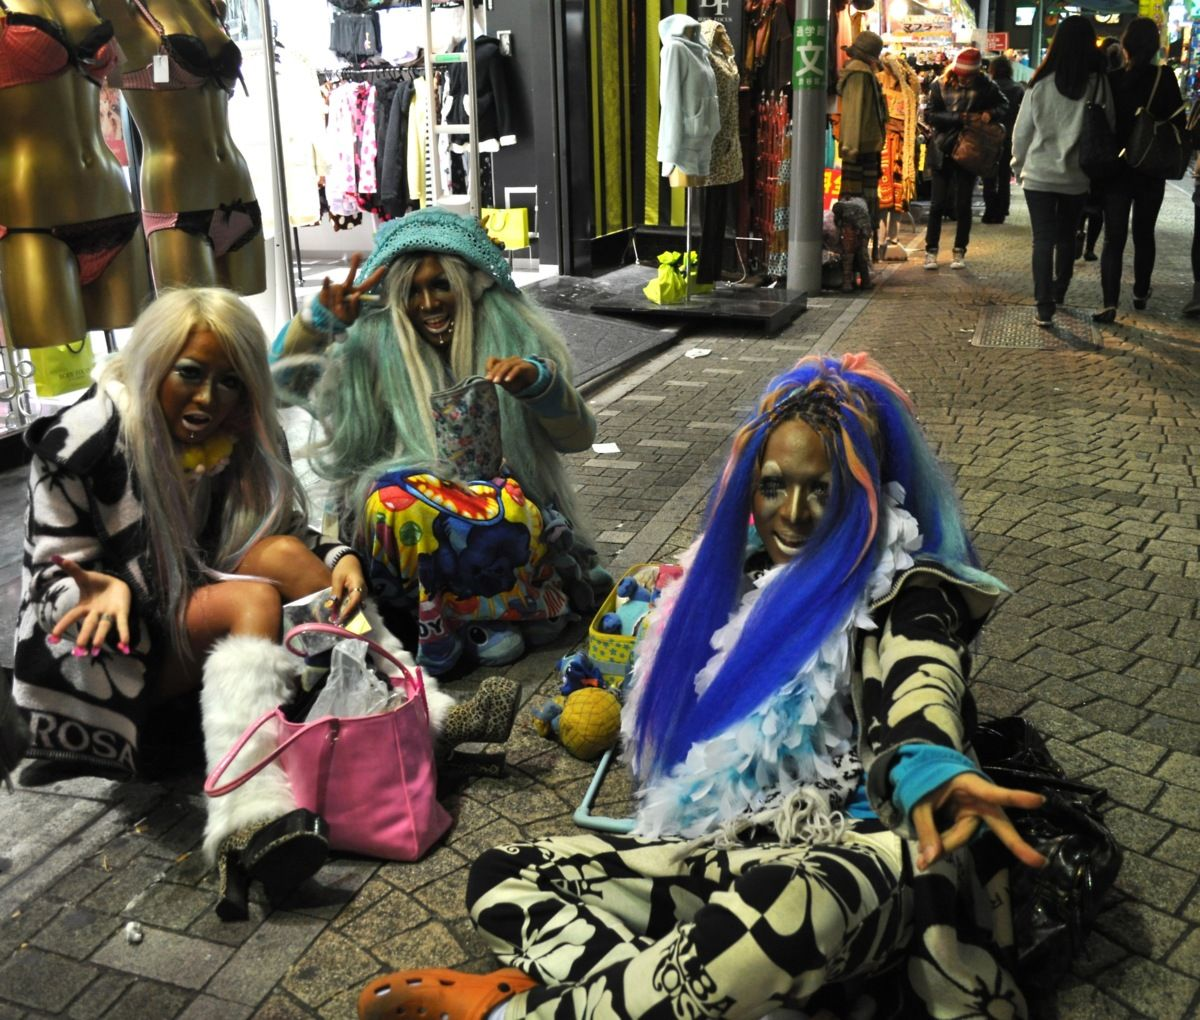 Tokyo expressions of individuality...